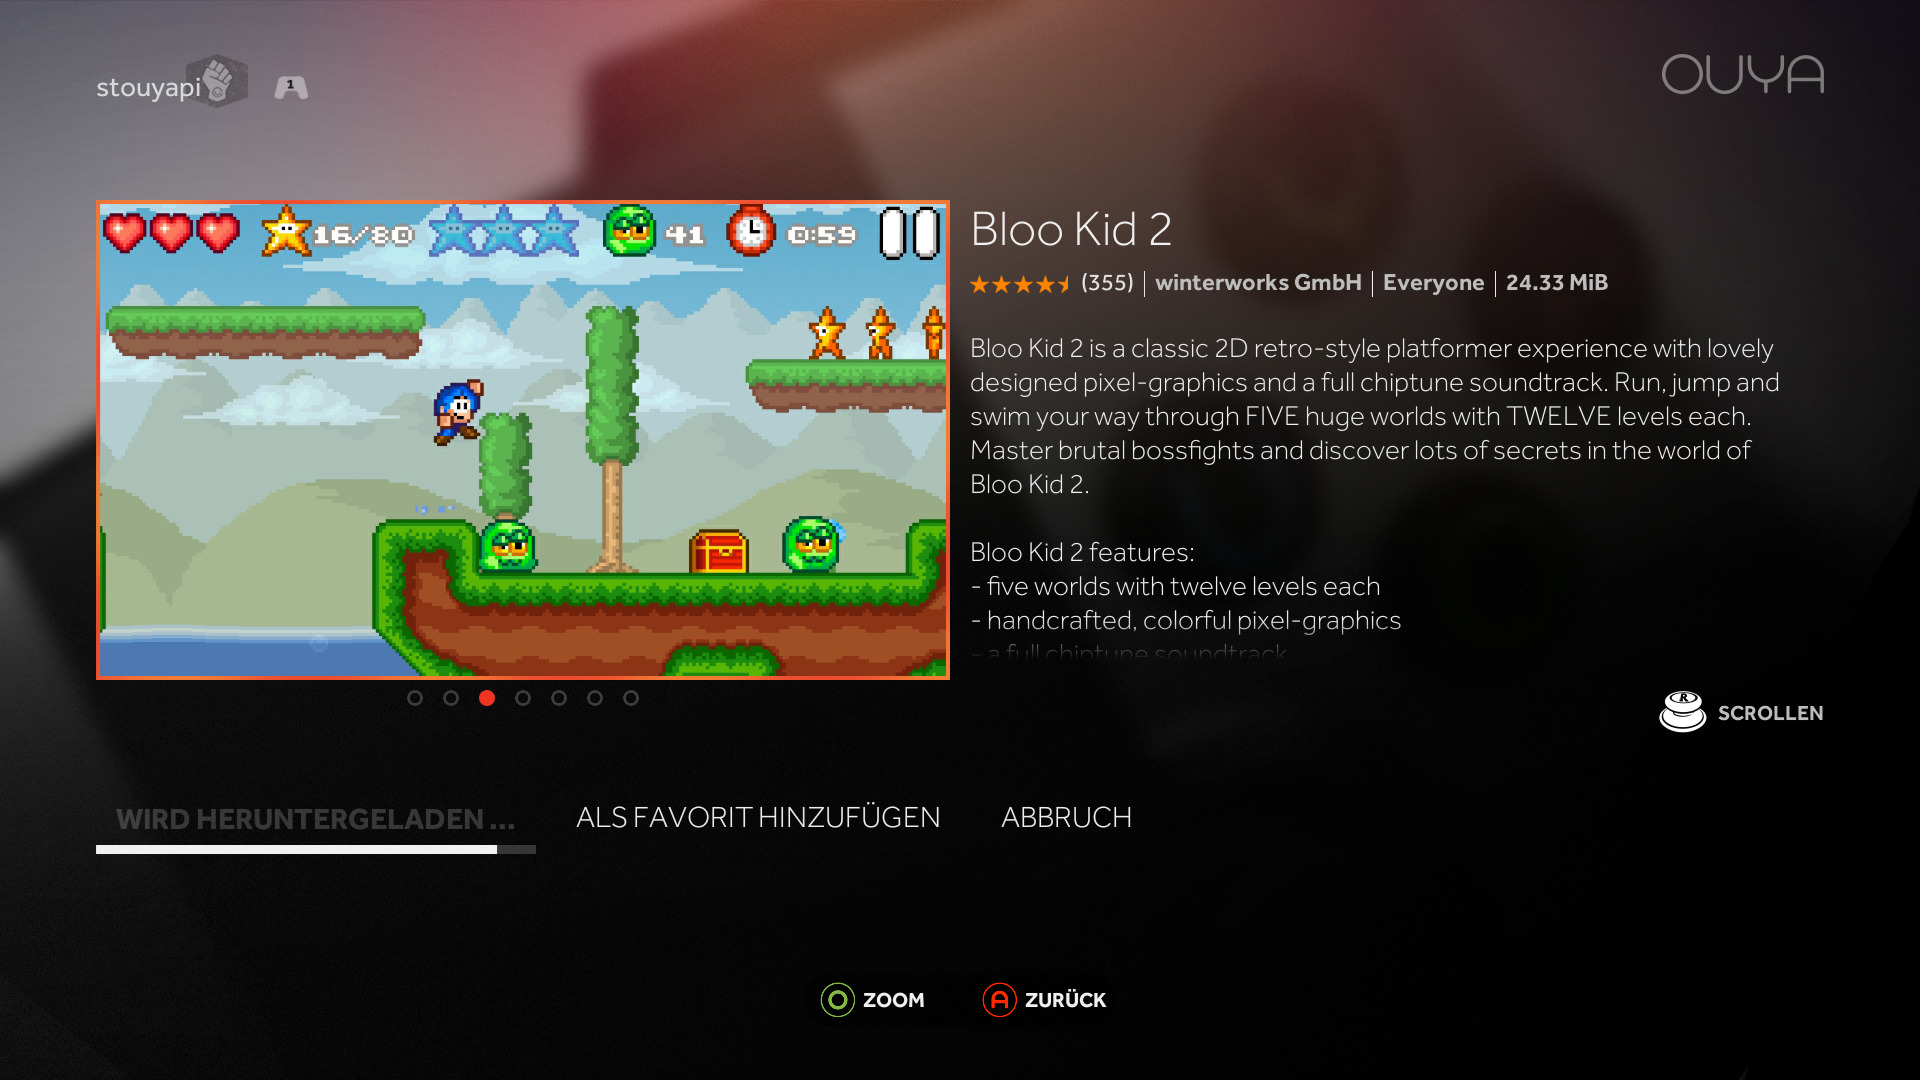 Ouya Server Replacement Is Online